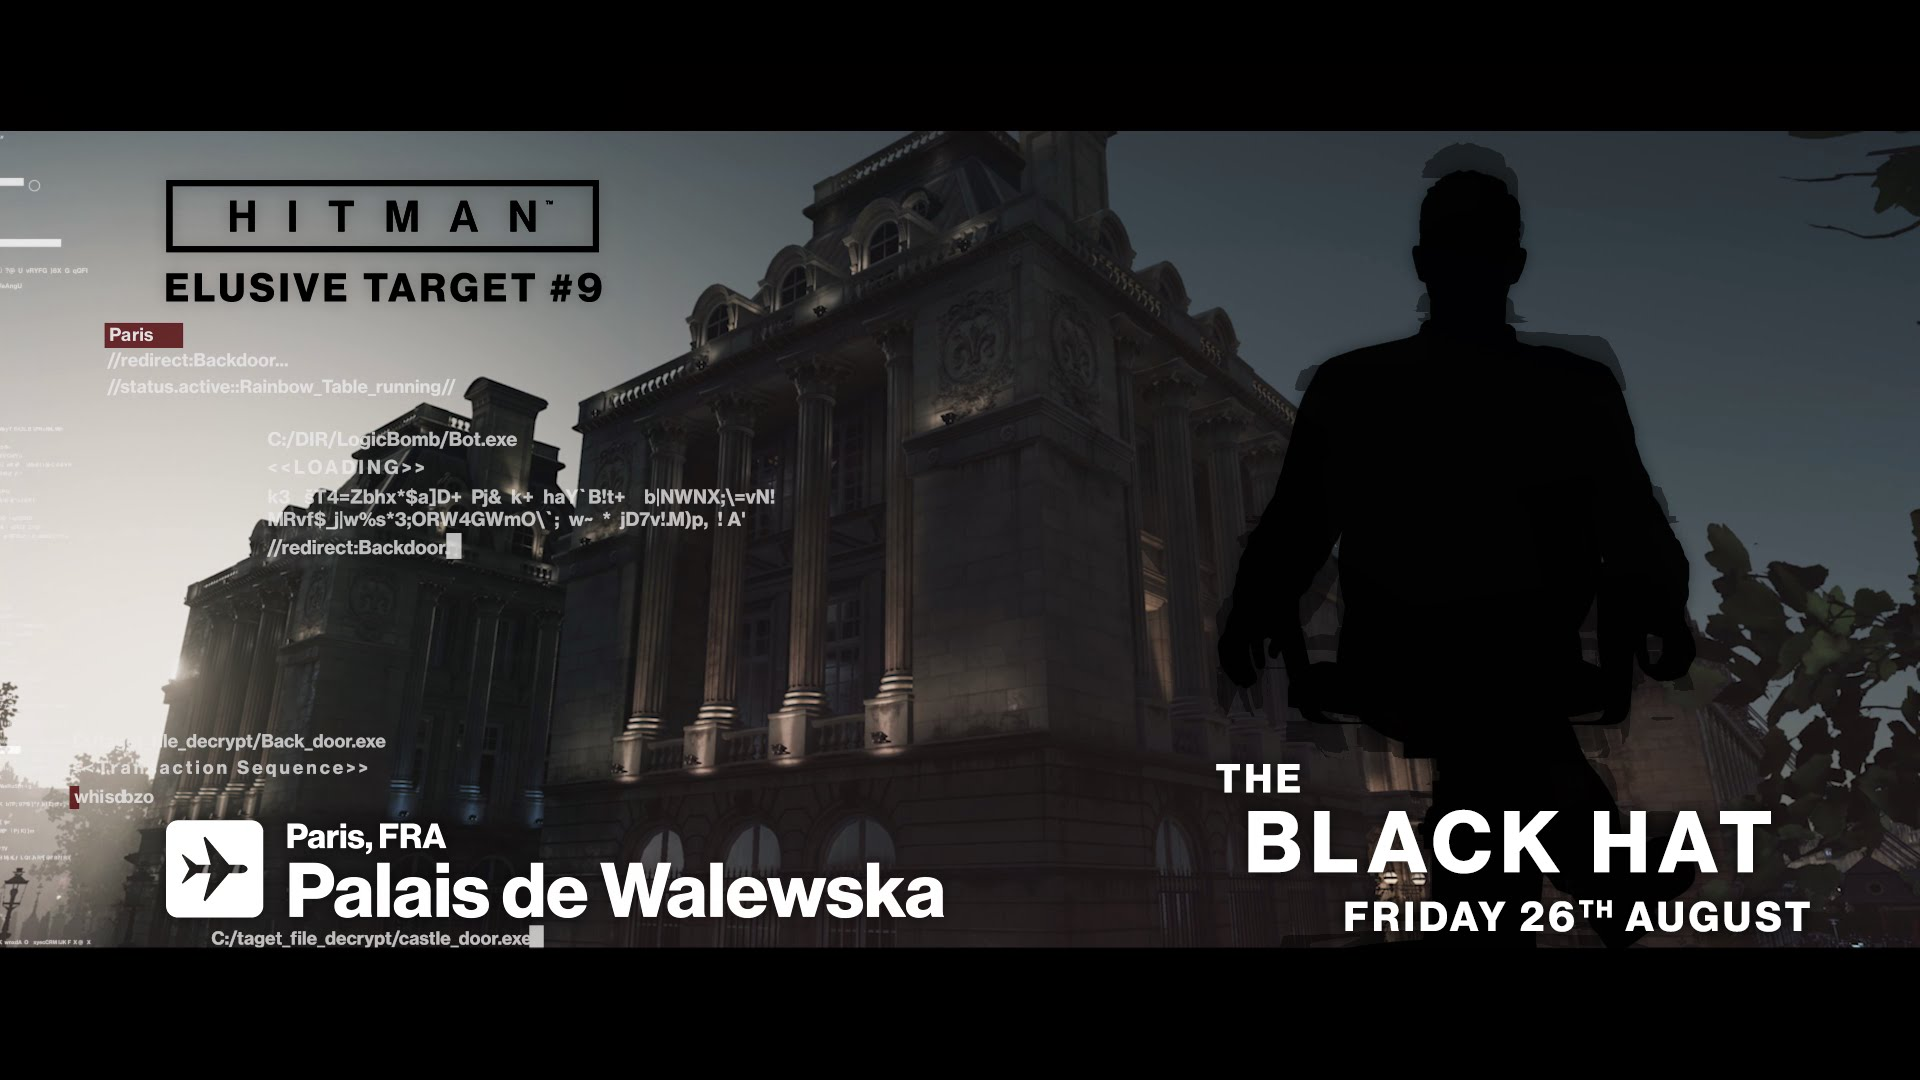 HITMAN Elusive Target #9 The Black Hat